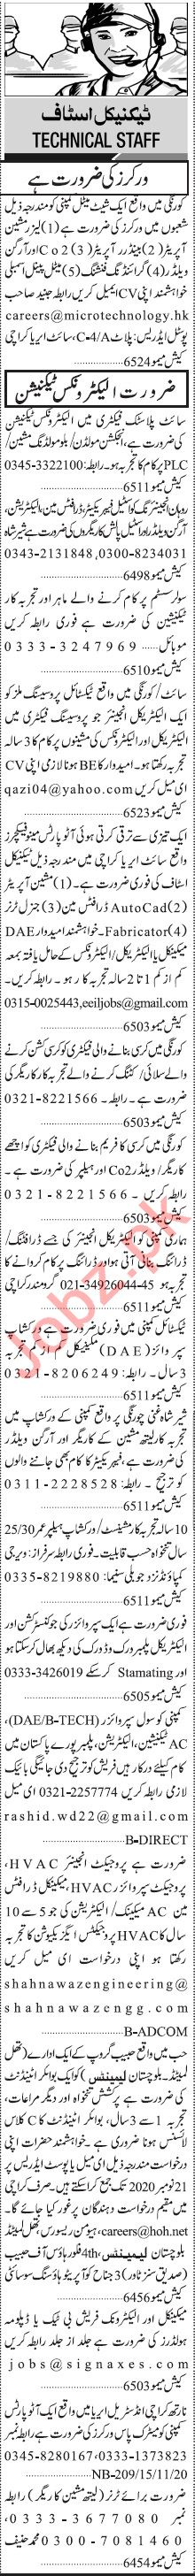 Jang Sunday Classified Ads 15 Nov 2020 for Technical Staff